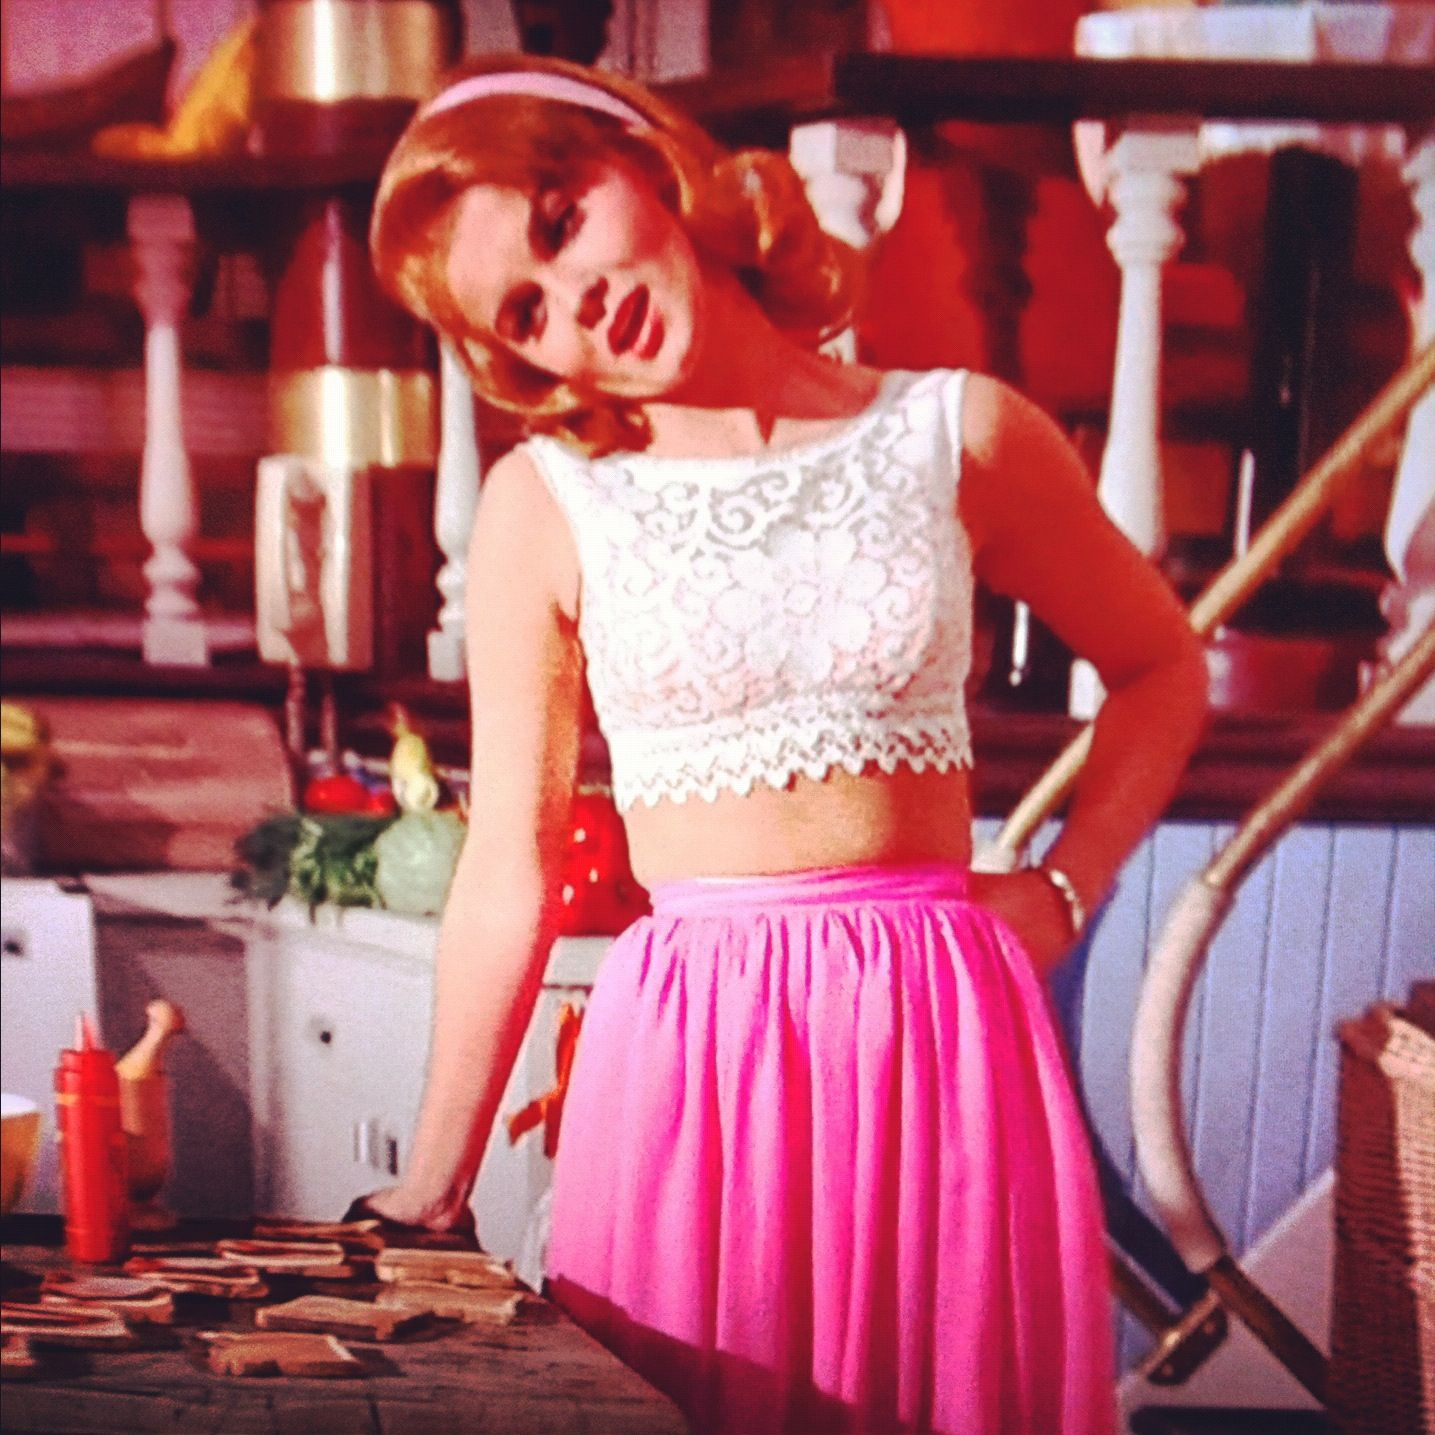 Ann Margret S Outfit In Viva Las Vegas I Just Watched This Movie And Fell In Love With This Outfit Vint Las Vegas Outfit Summer Las Vegas Outfit Vegas Outfit